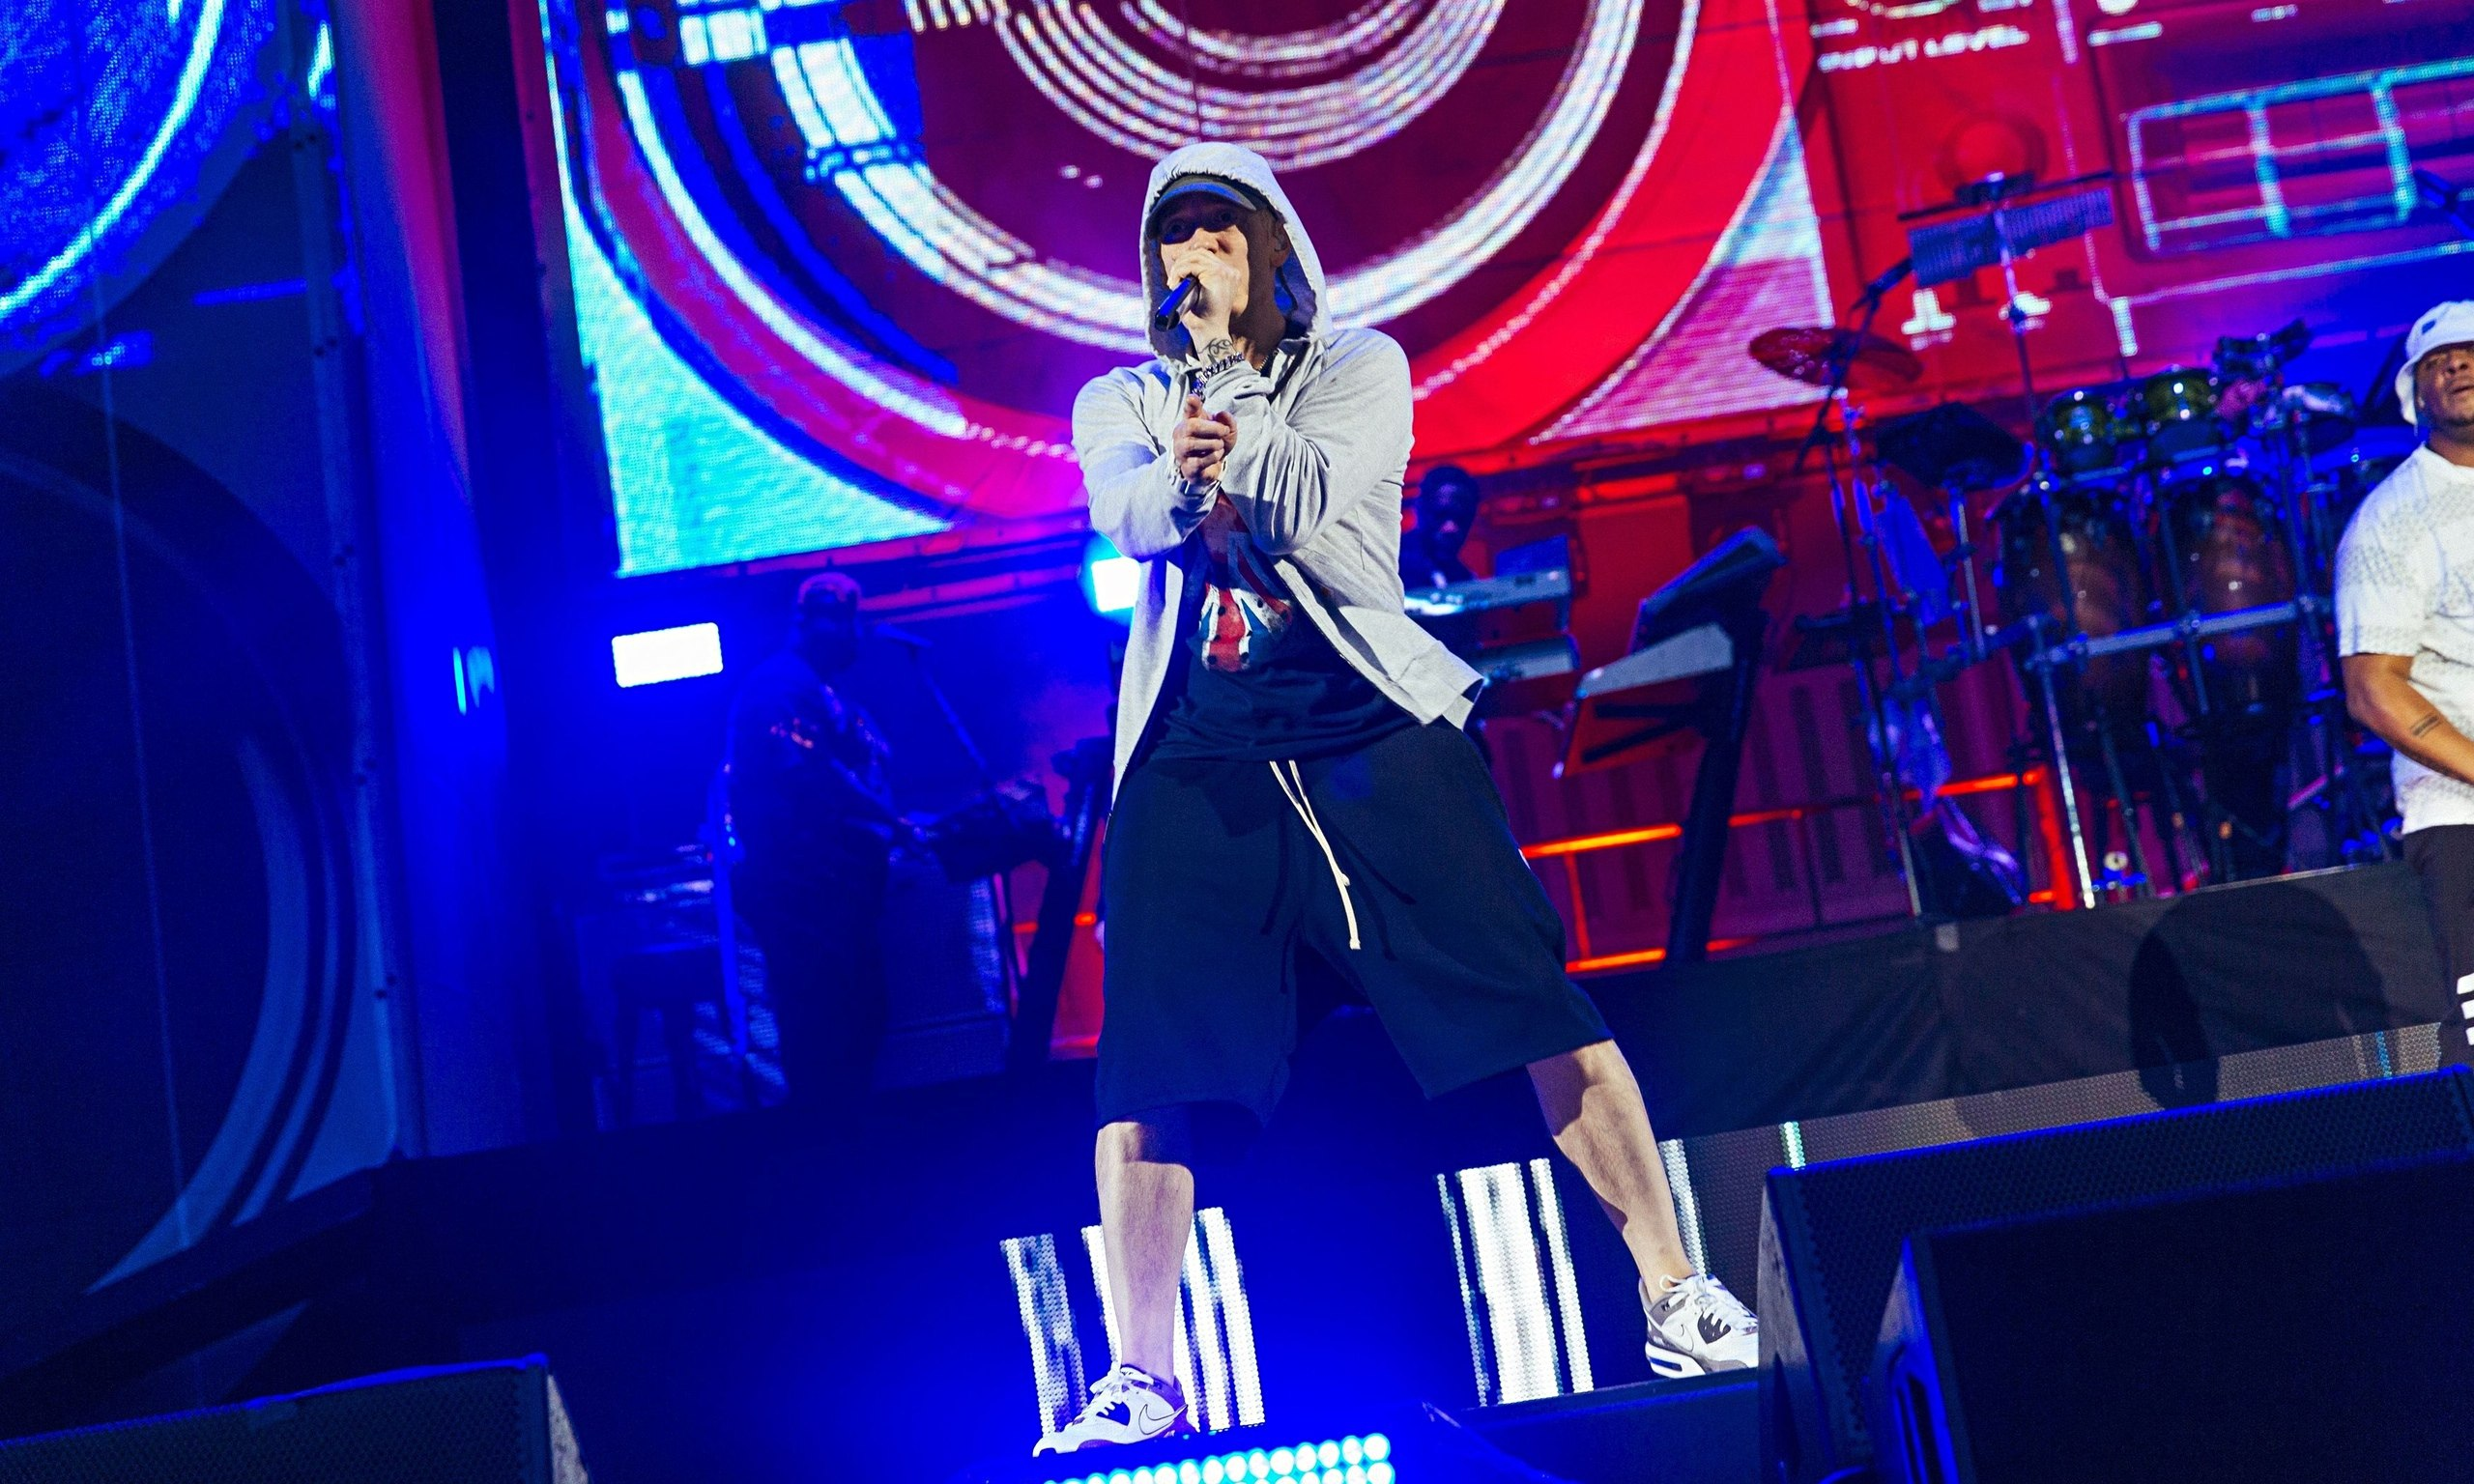 Eminem performing at Wembley Stadium 11 July 2014